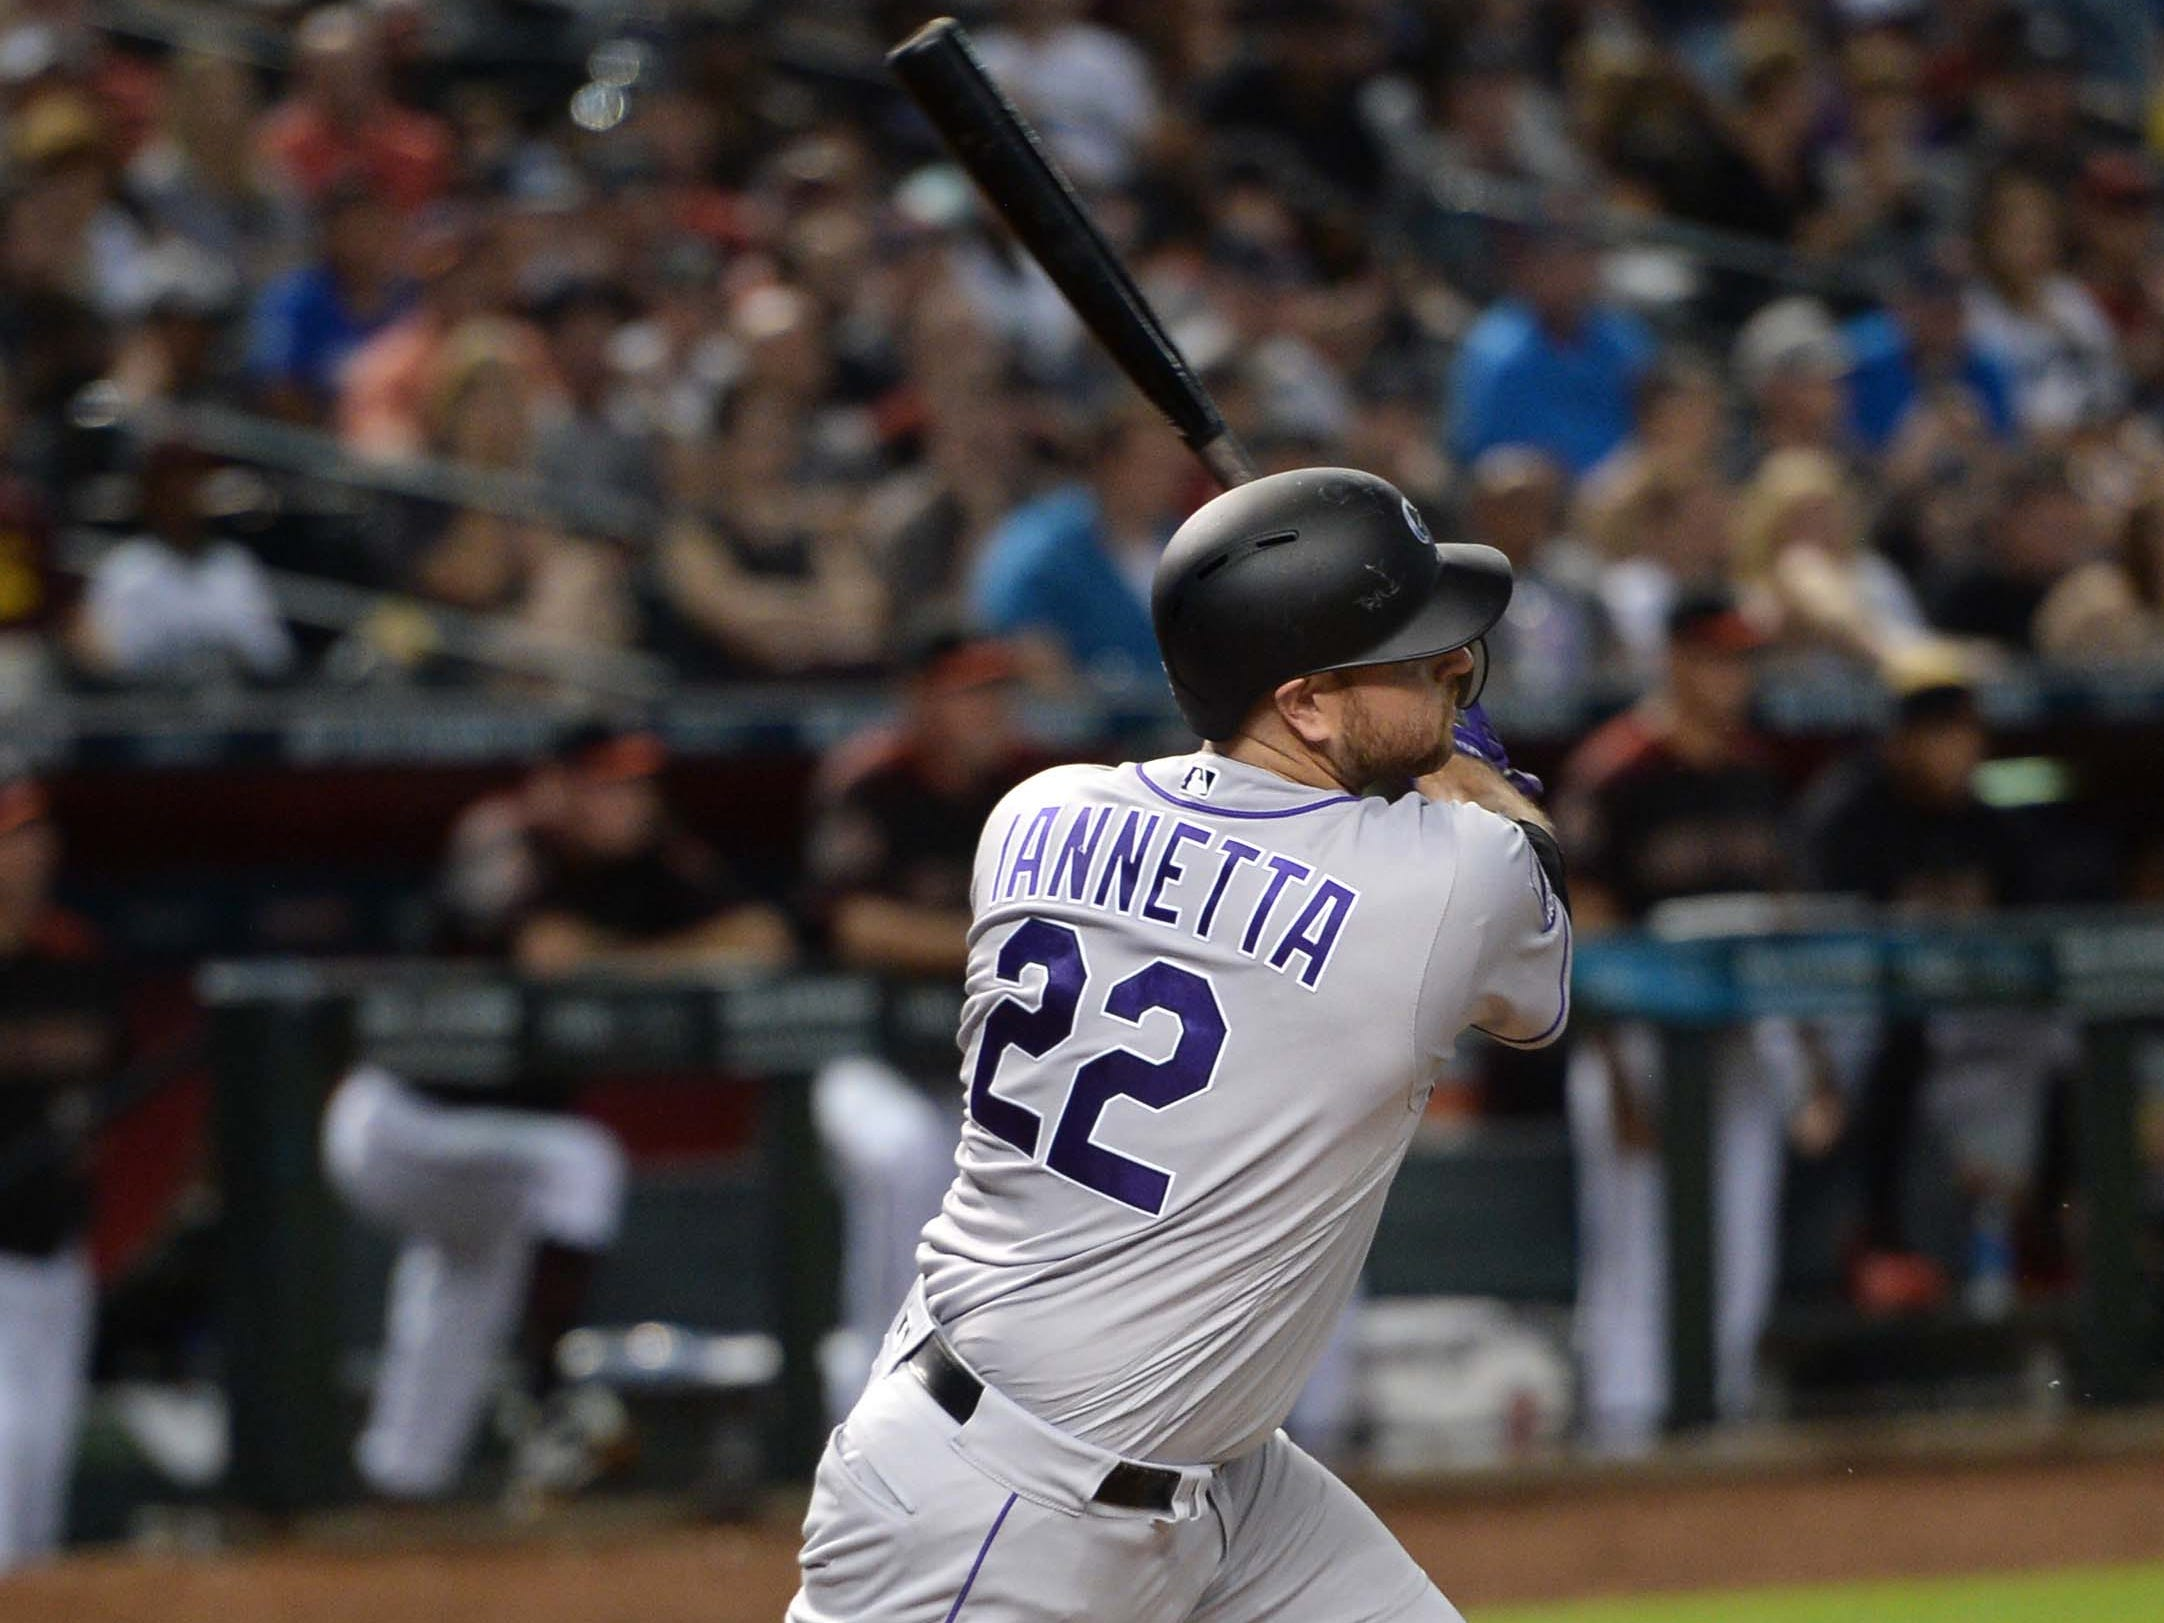 Sep 22, 2018; Phoenix, AZ, USA; Colorado Rockies catcher Chris Iannetta (22) hits a two RBI single against the Arizona Diamondbacks during the third inning at Chase Field.